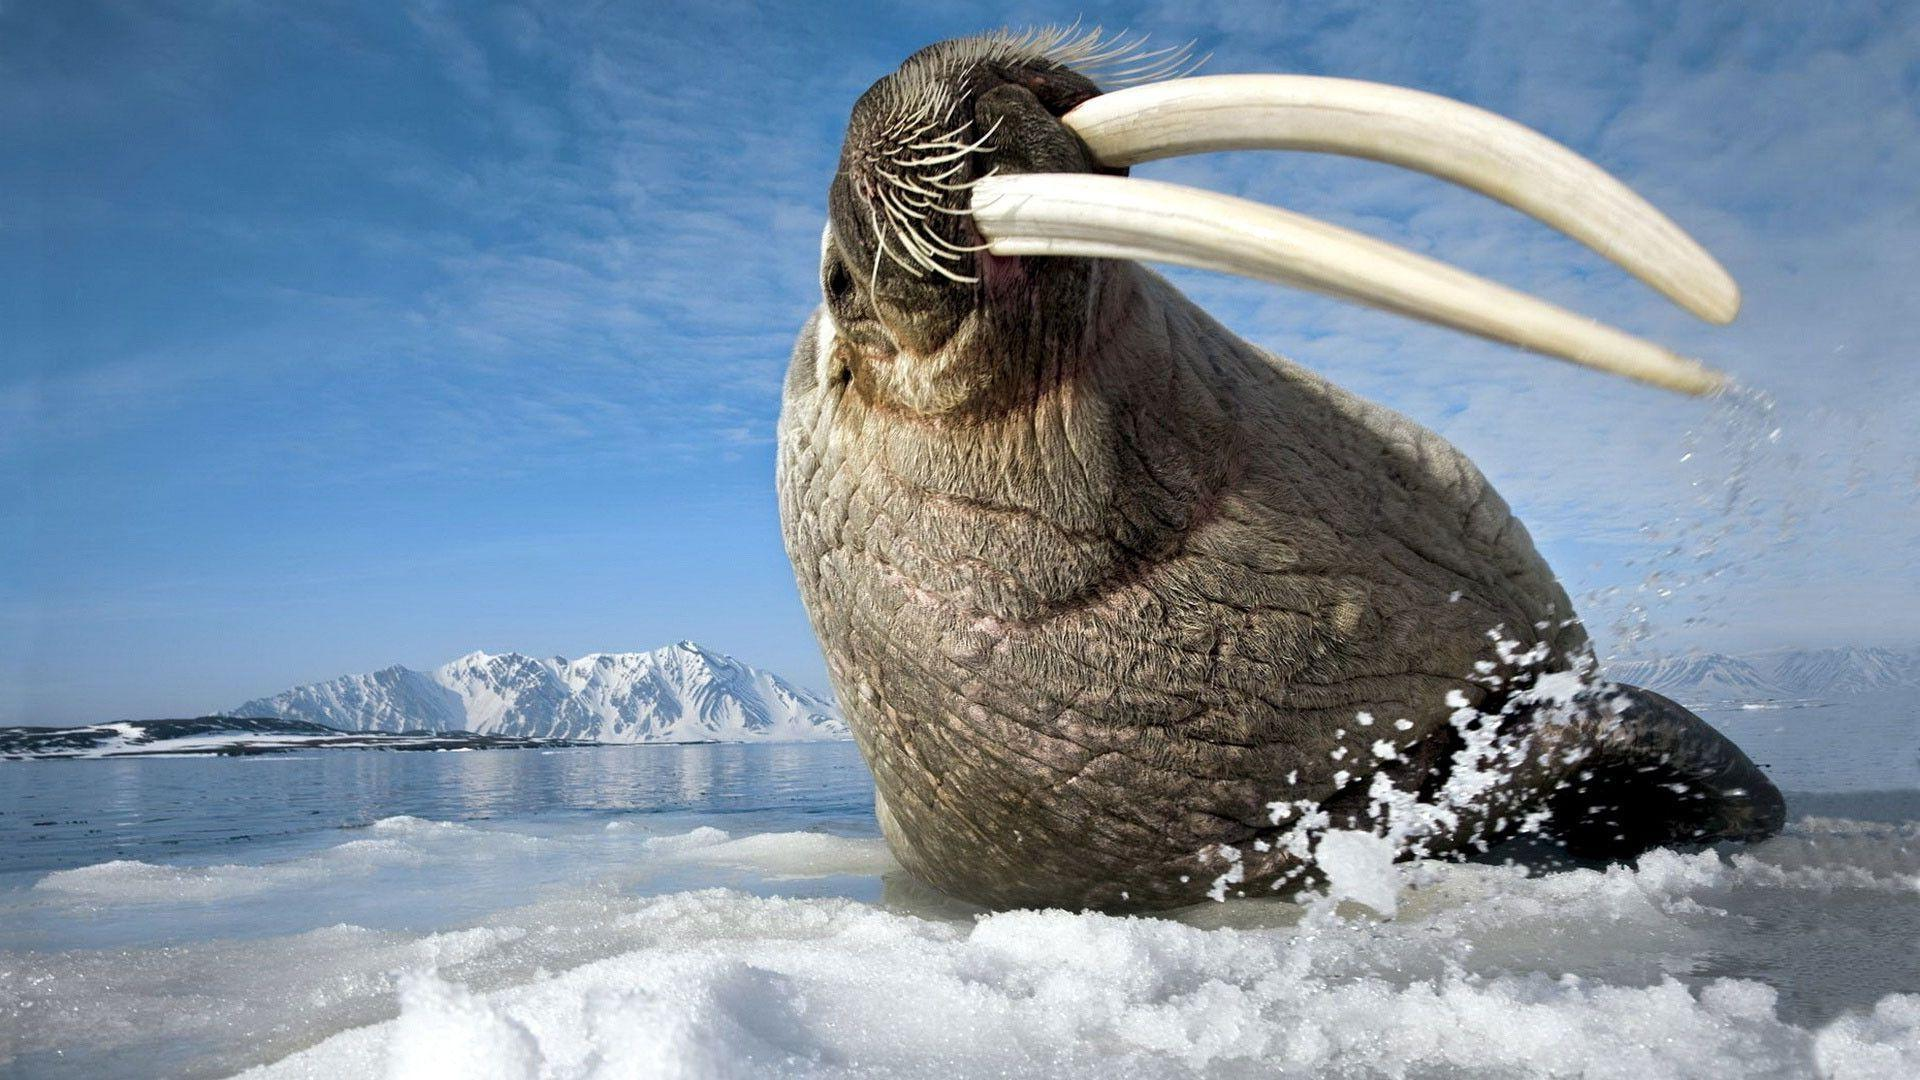 Walrus wallpapers wallpaper cave - Hd images download ...